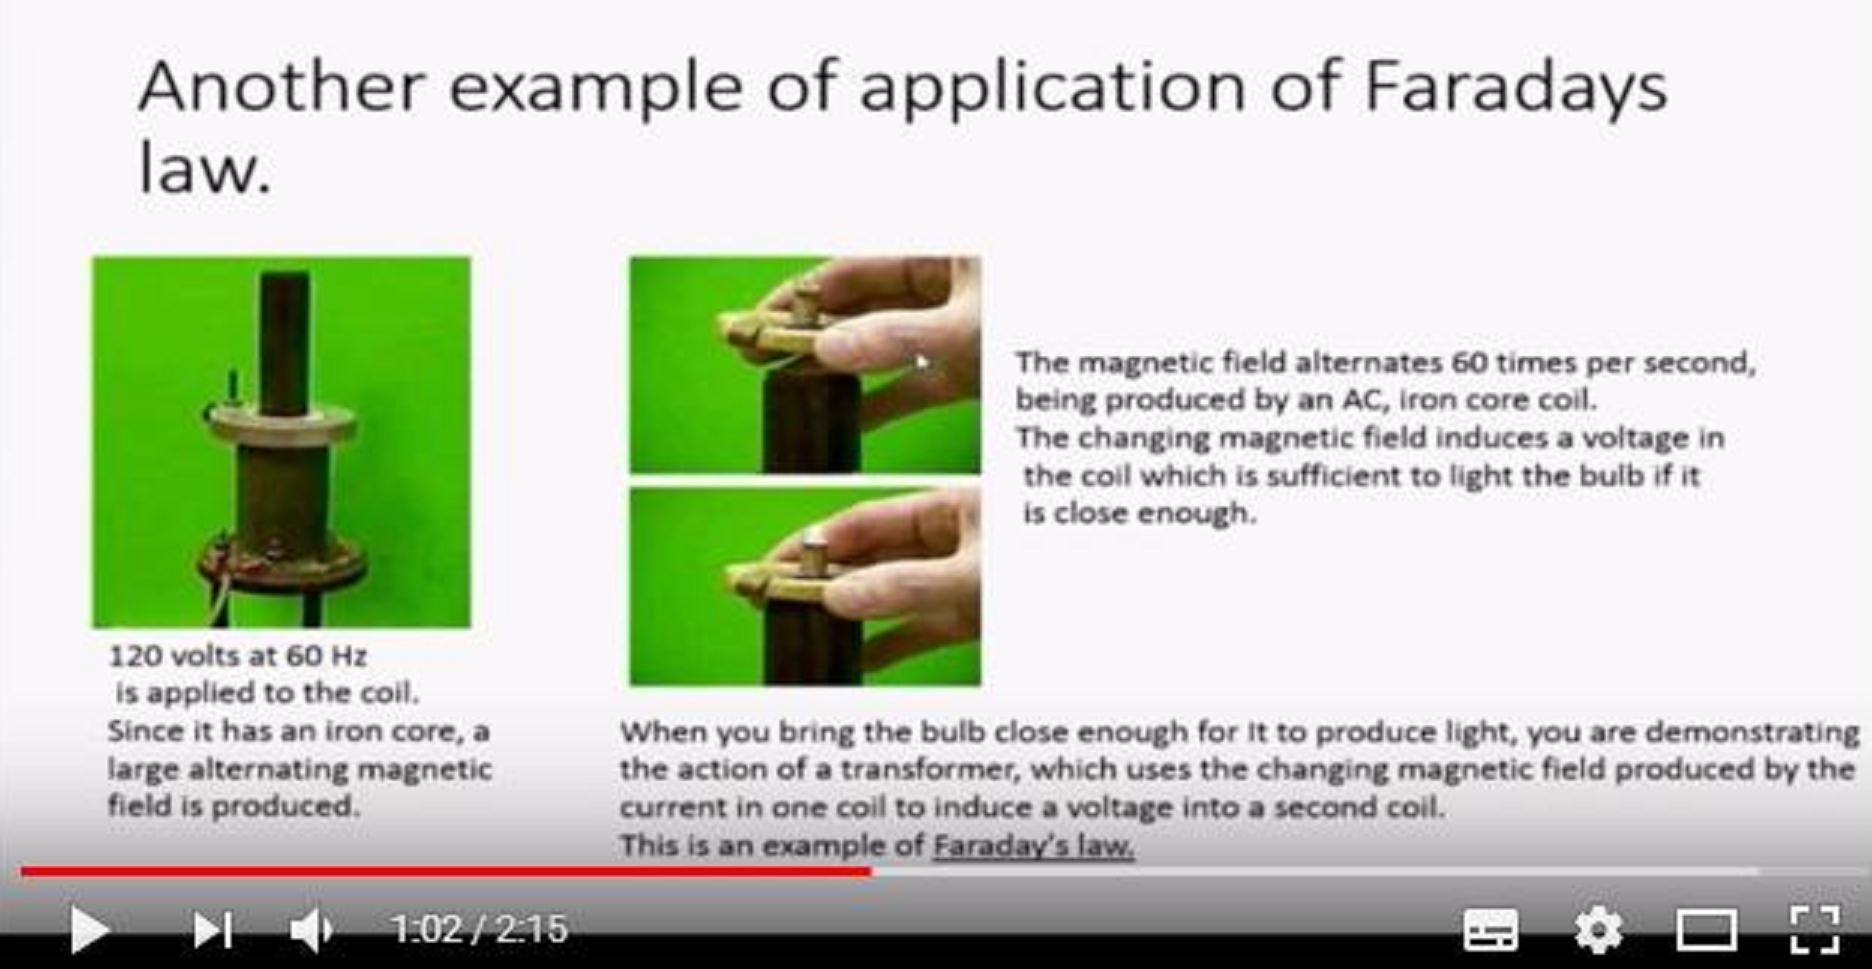 Real Application of the Faraday Law in Electrical